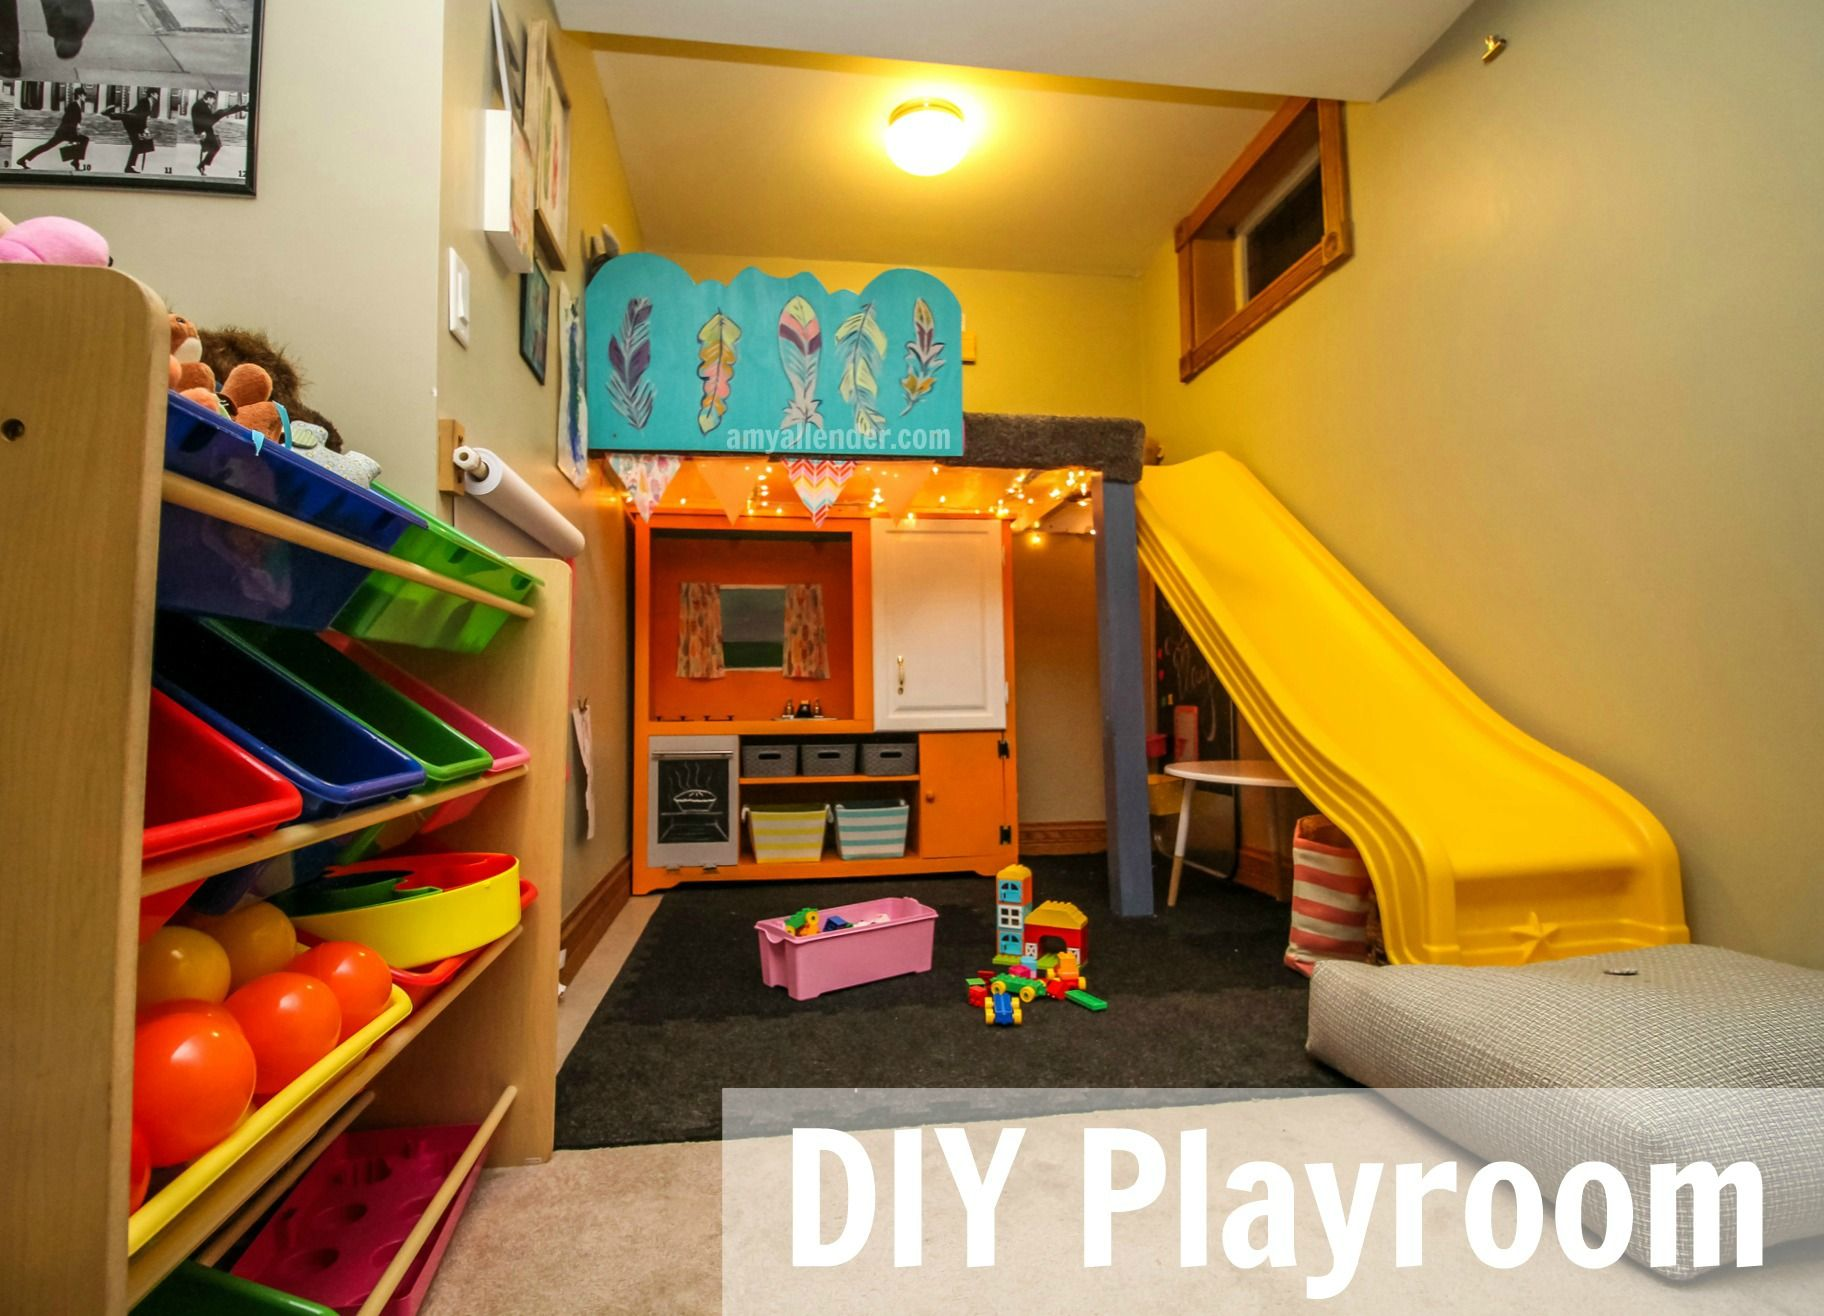 Diy Playroom The Big Reveal Amy Allender Dot Com Small Playroom Diy Playroom Playroom Organization